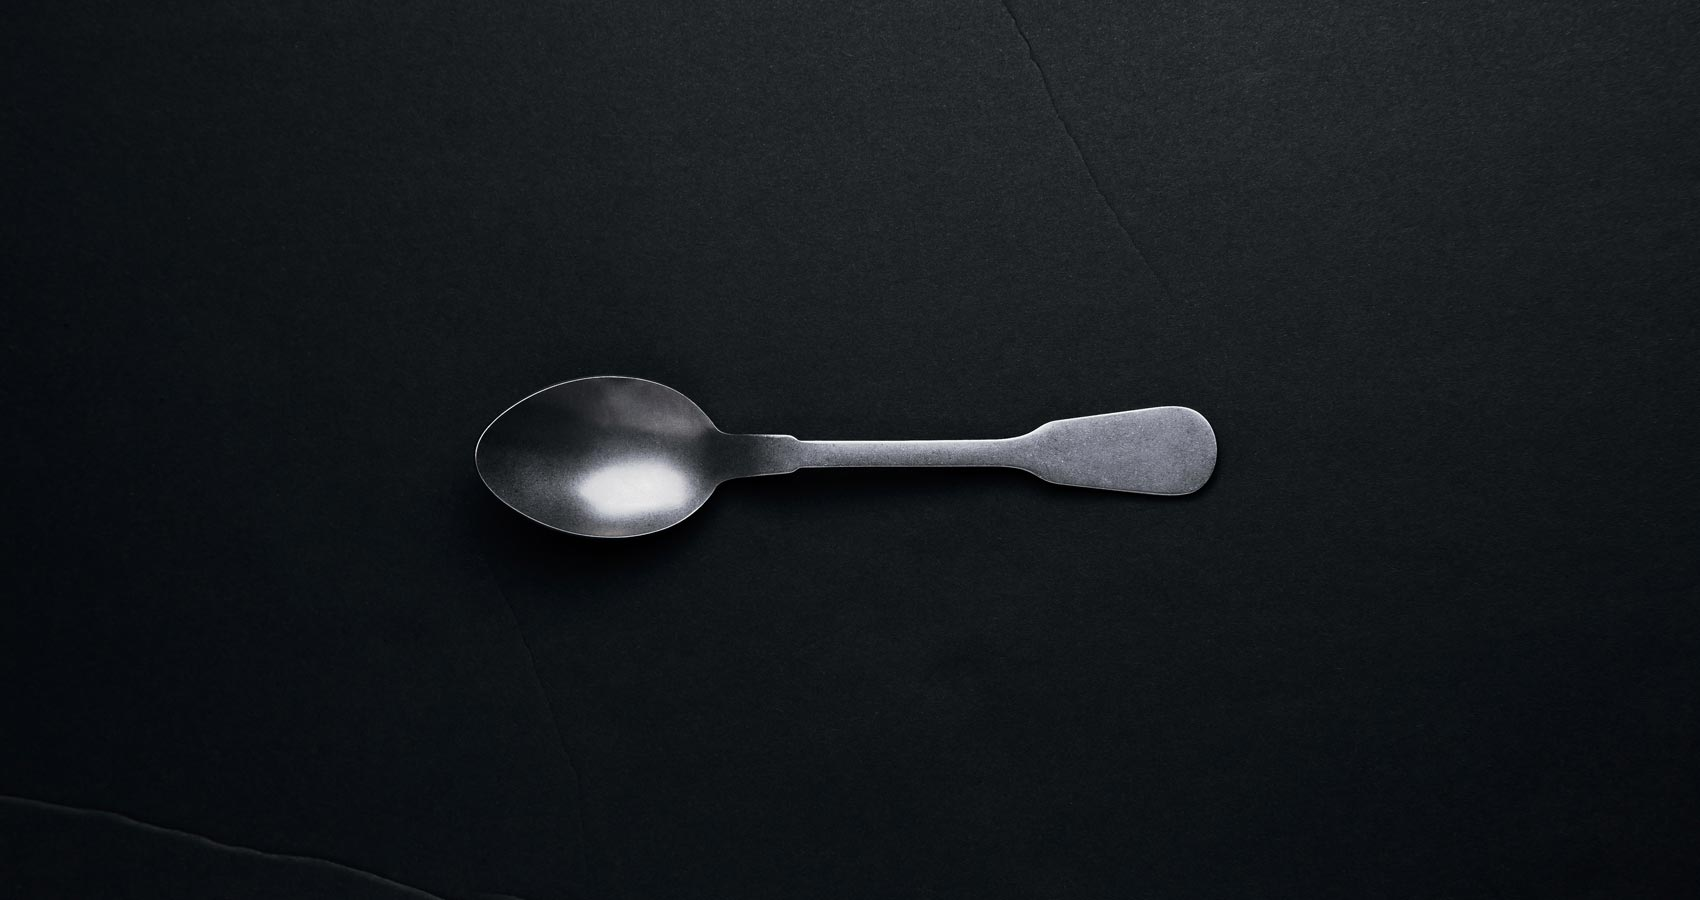 Sans a Spoon to Feed, a poem written by Lei Writses at Spillwords.com